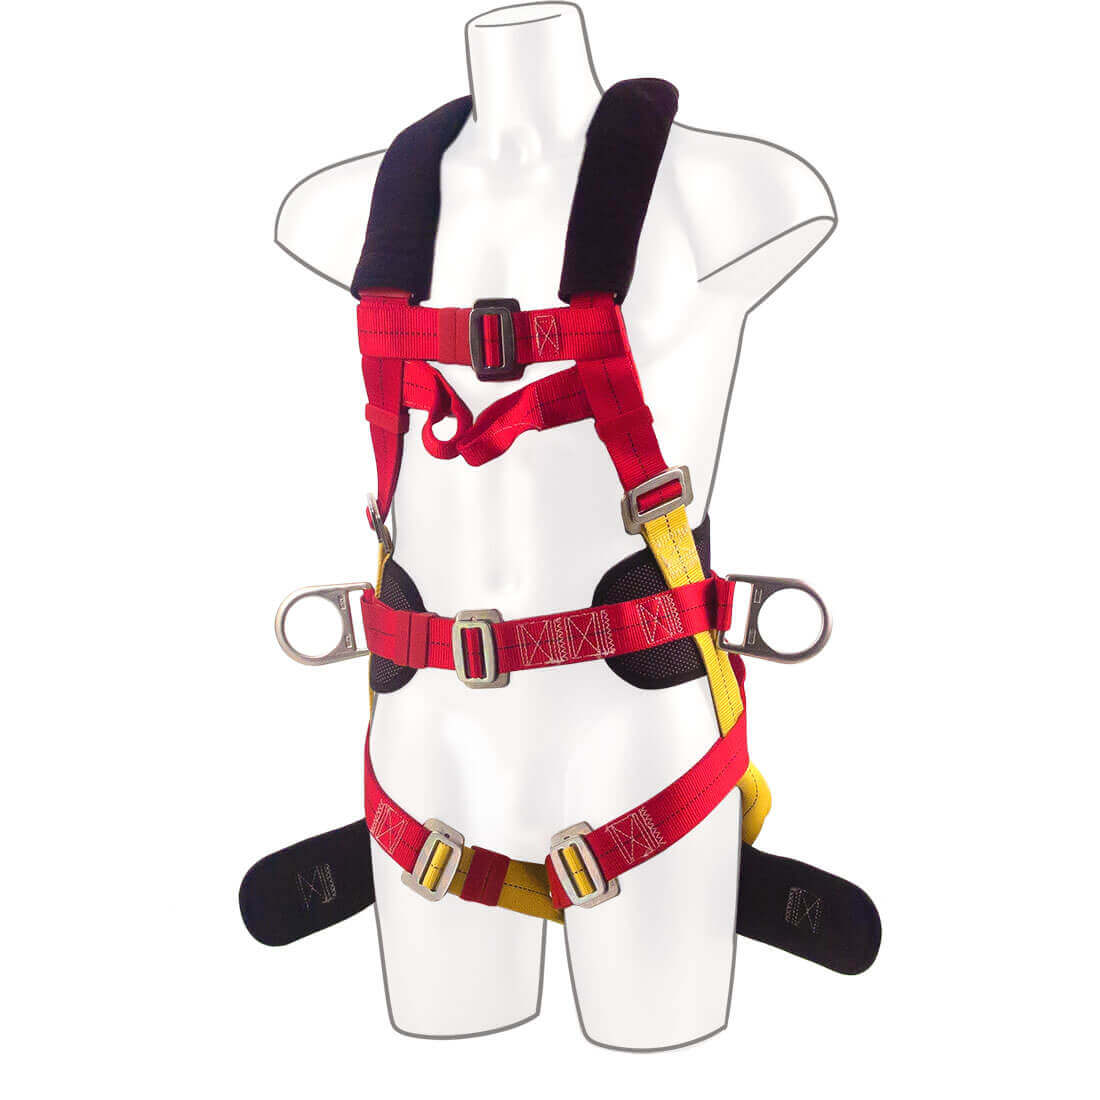 Portwest FP18 Fall Arrest 8 Point Harness | BK Safety